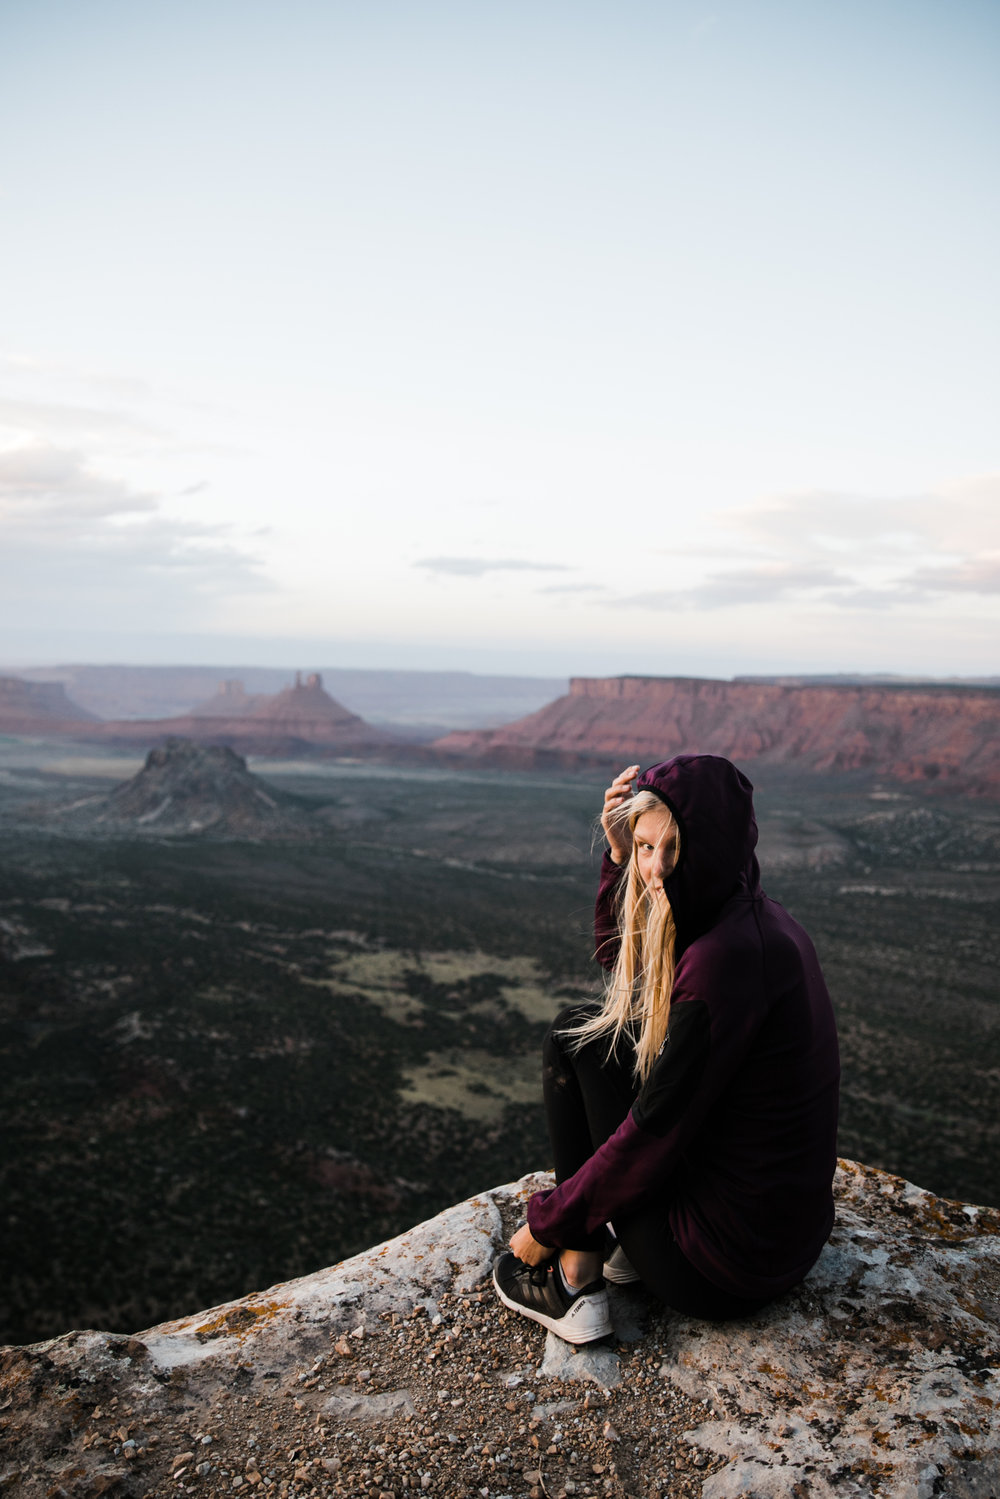 exploring utah | utah and california adventure elopement photographers | the hearnes adventure photography | www.thehearnes.com